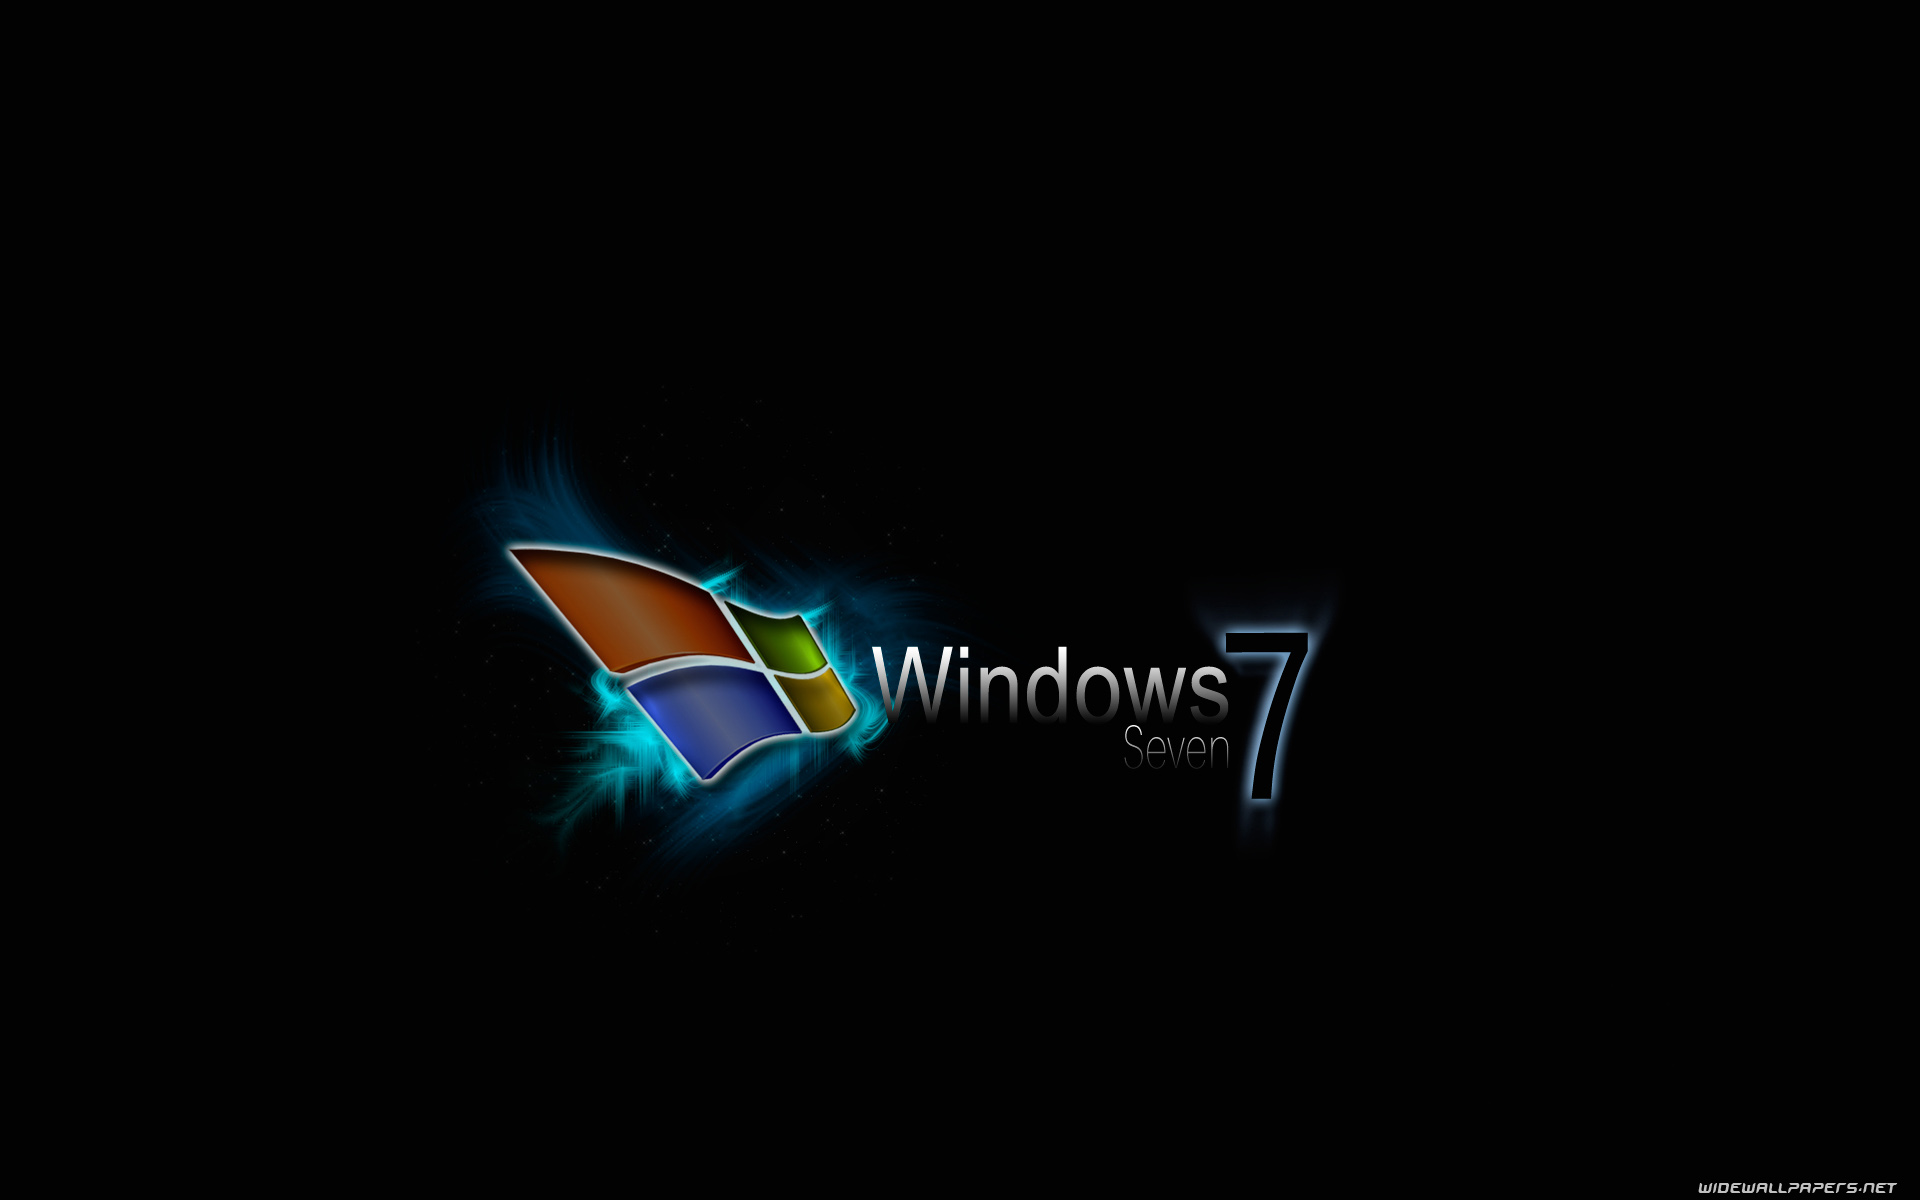 windows 7 wallpaper 1440x900 - photo #32